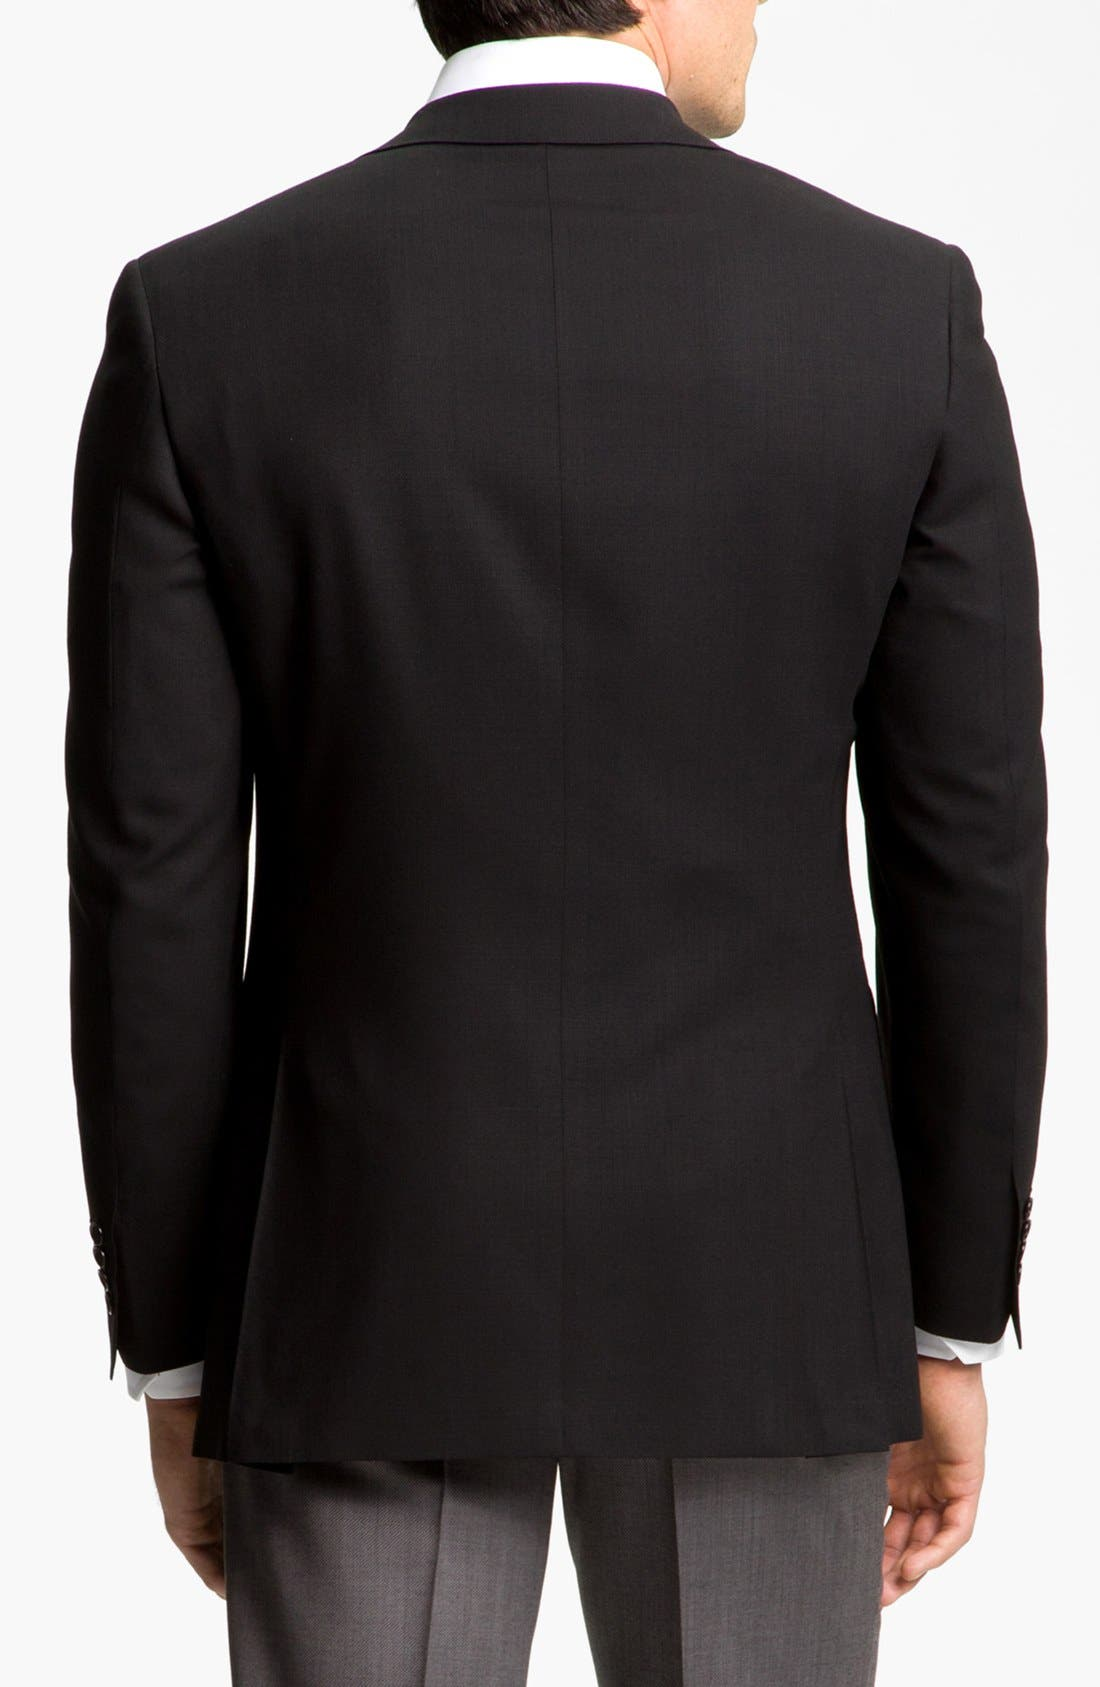 CANALI, Classic Fit Solid Wool Blazer, Alternate thumbnail 2, color, BLACK